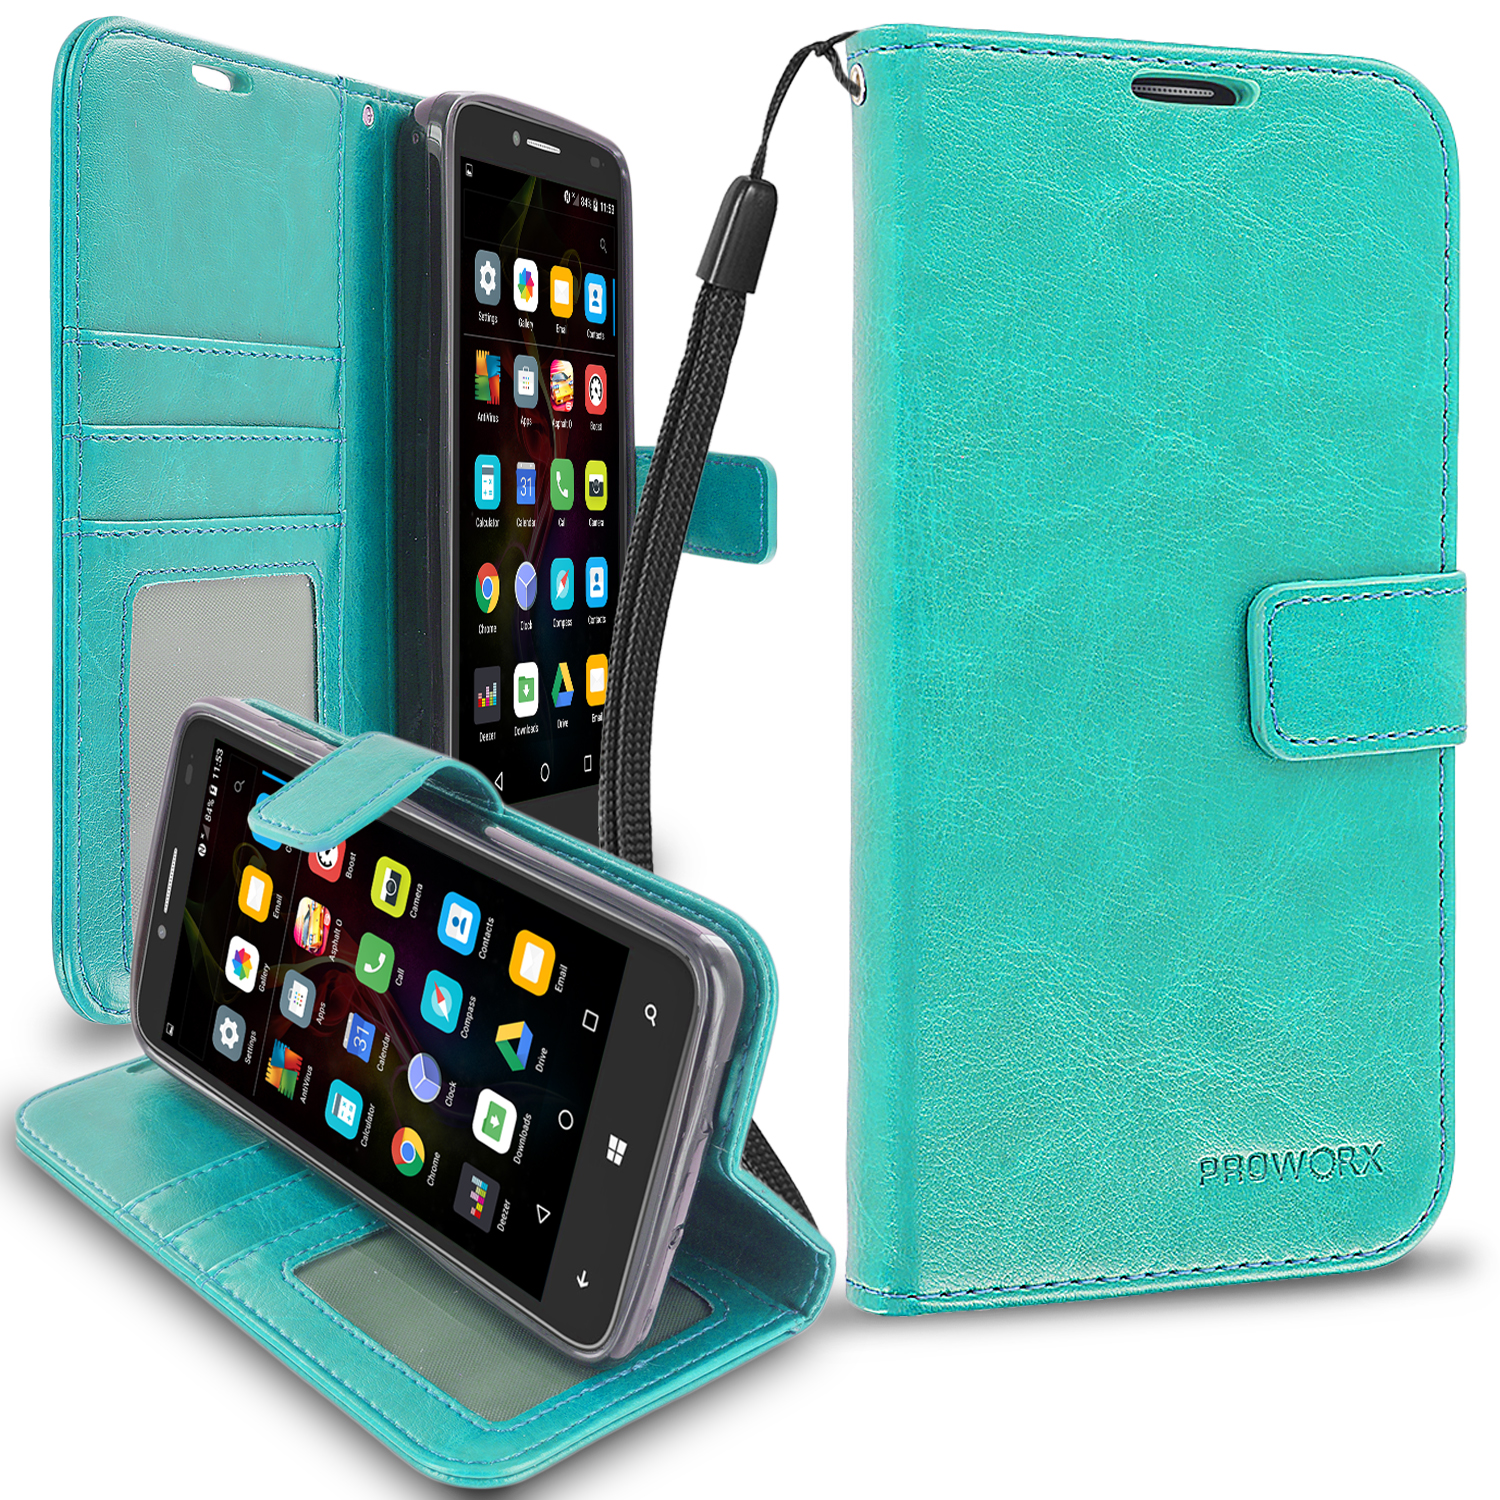 Alcatel OneTouch Fierce XL Mint Green ProWorx Wallet Case Luxury PU Leather Case Cover With Card Slots & Stand